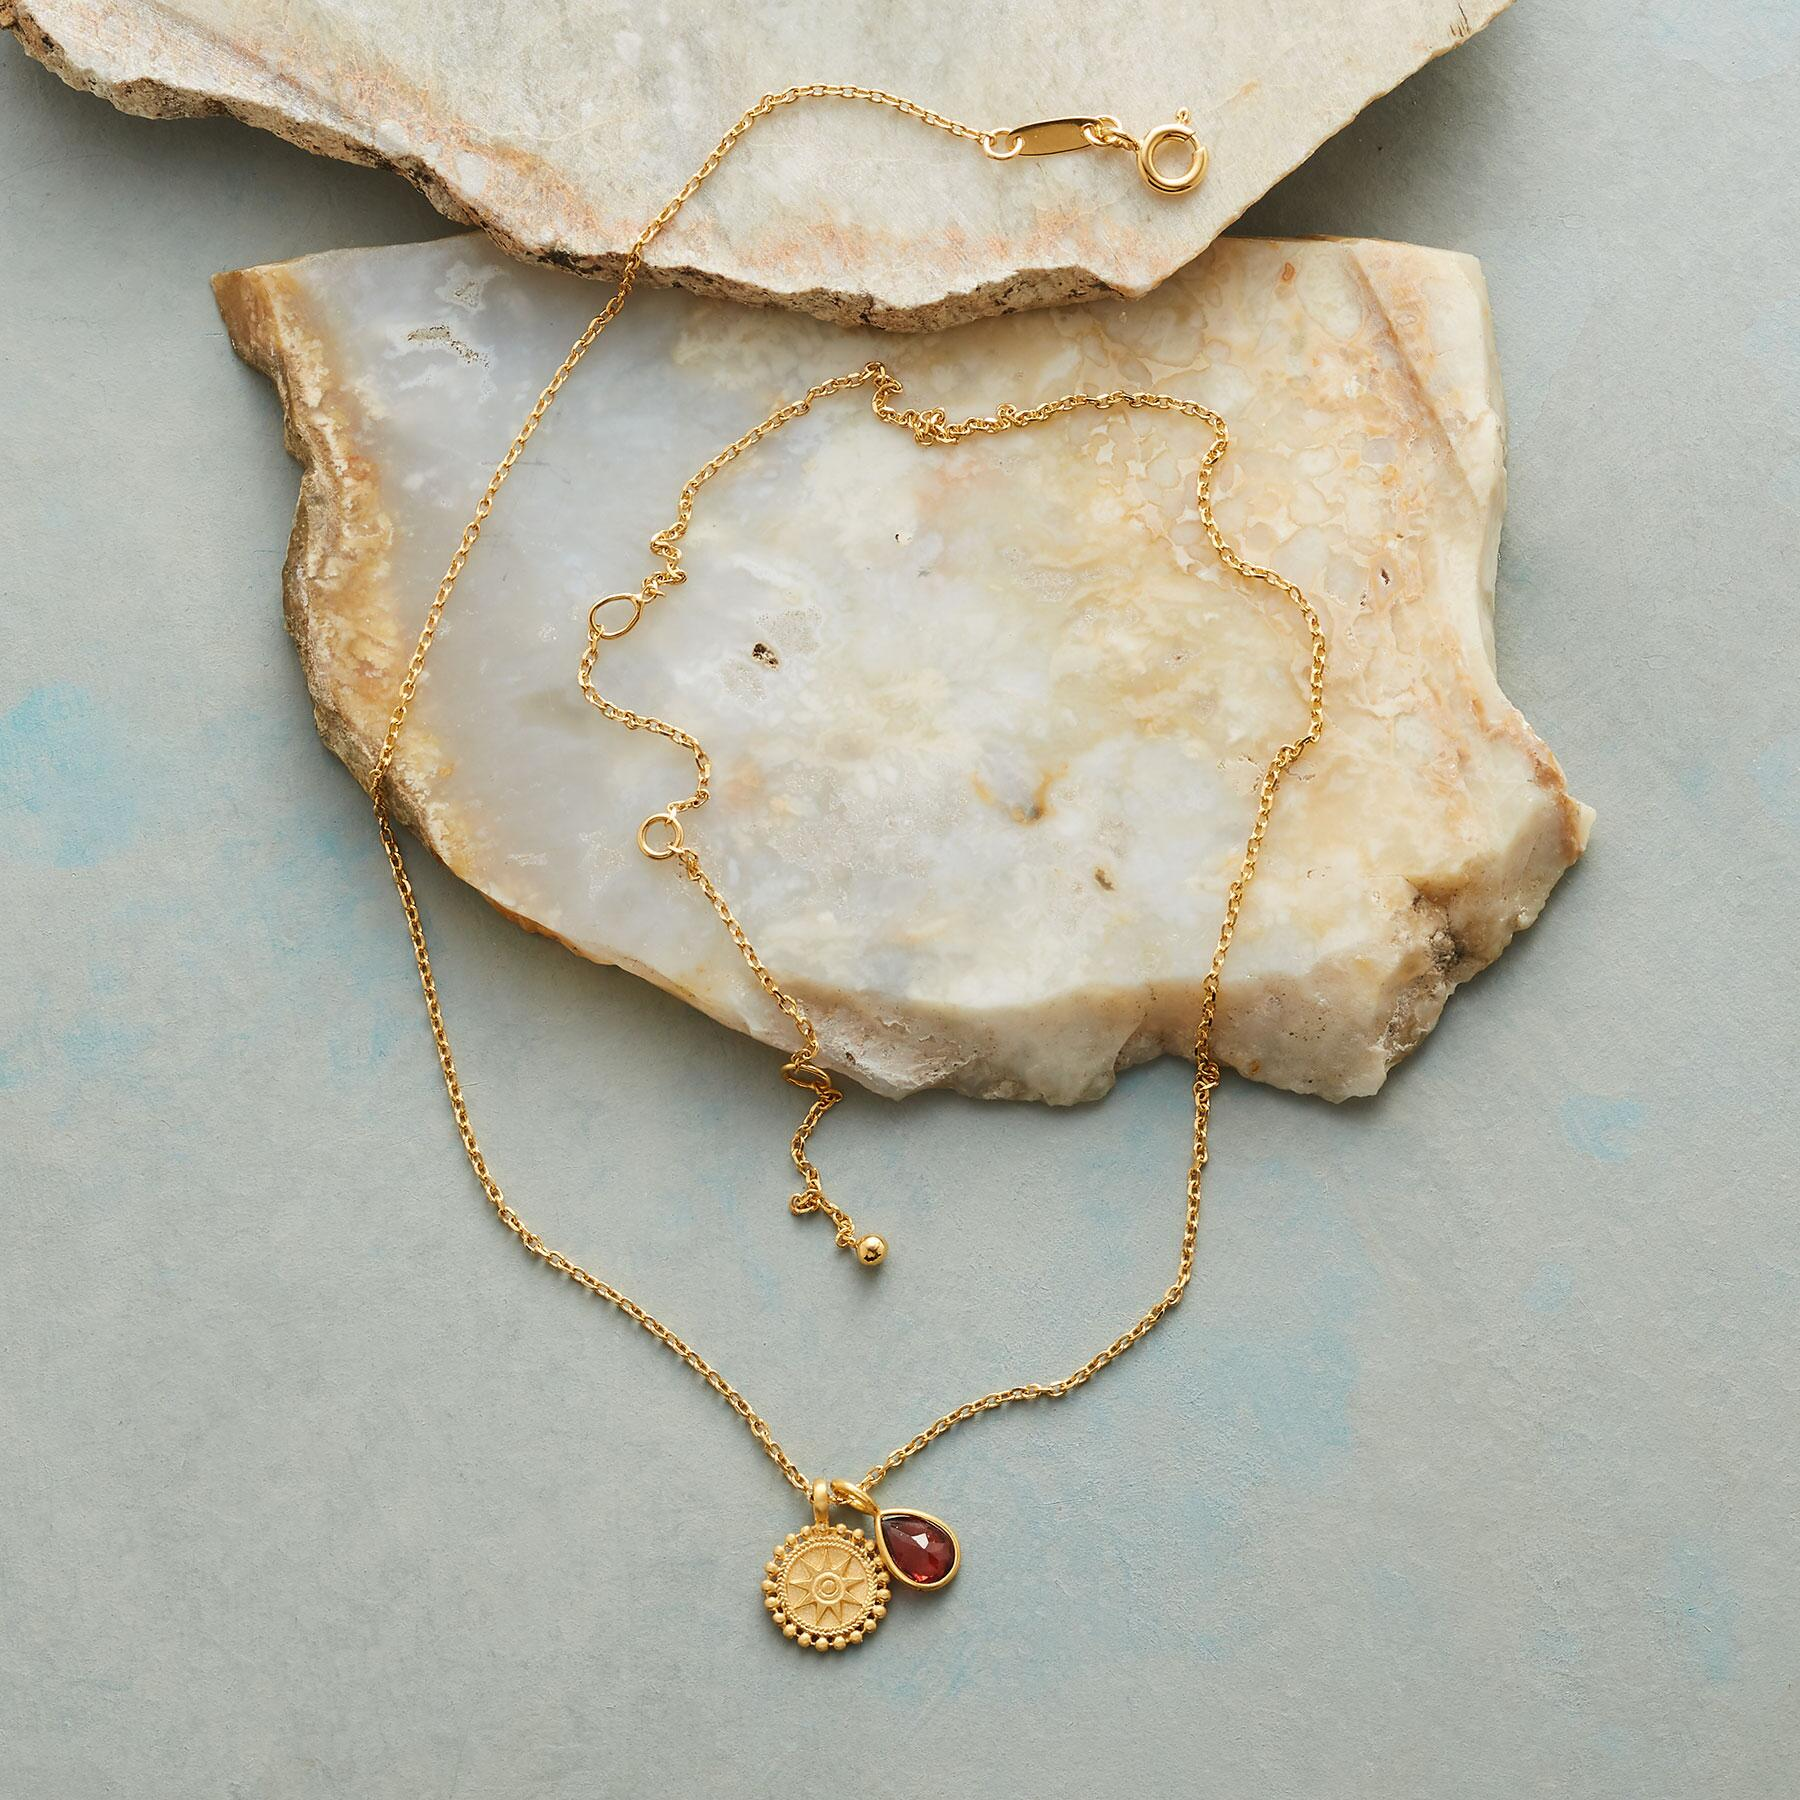 SUNNYSIDE BIRTHSTONE NECKLACE: View 2